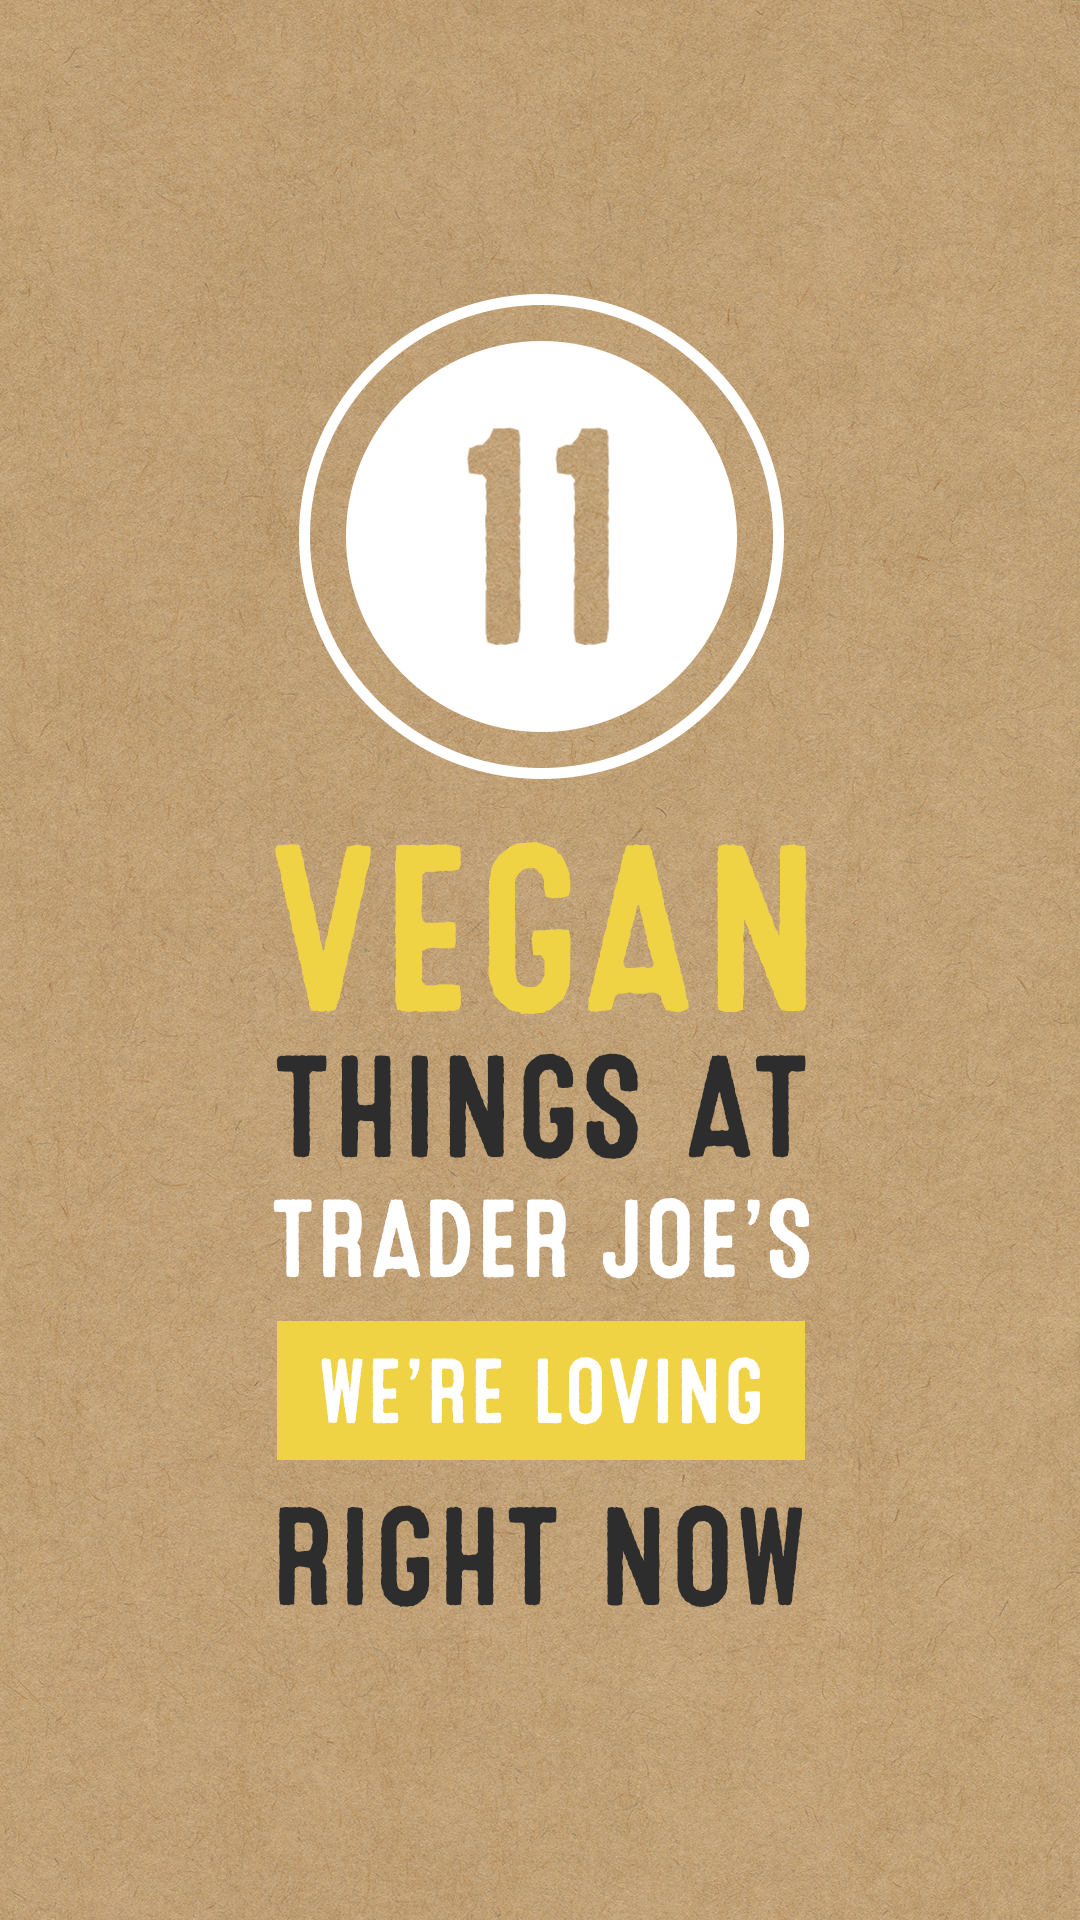 11 Vegan Things at Trader Joe's We're Loving Right Now